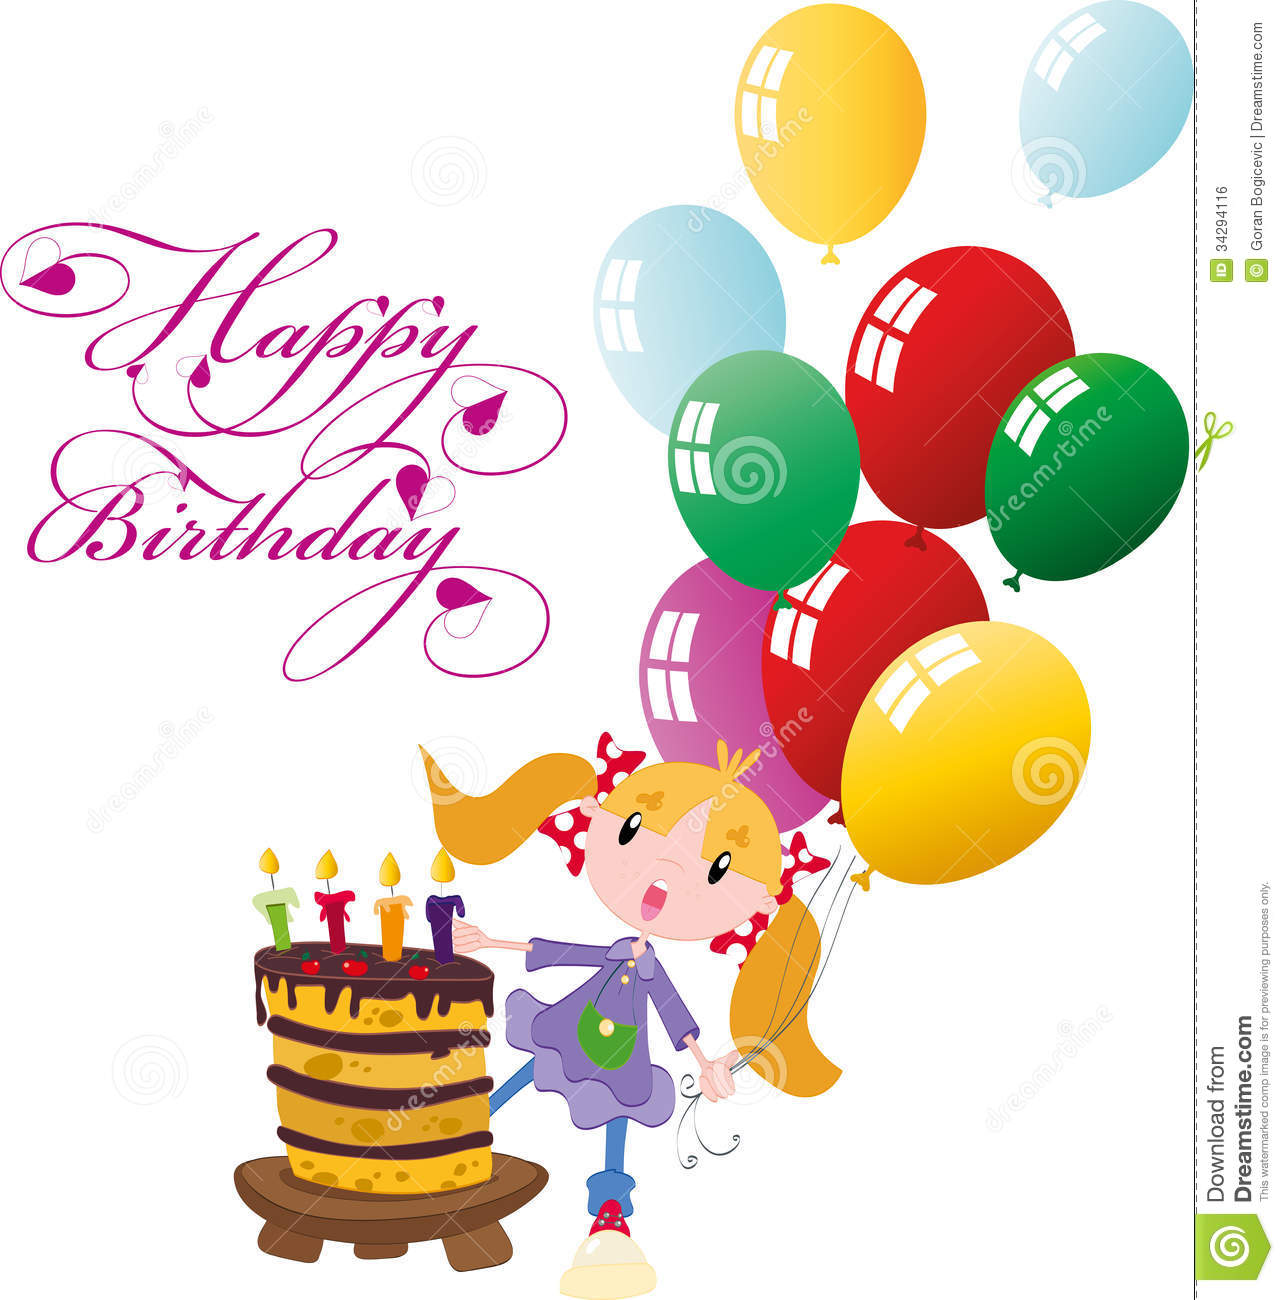 Happy Birthday Royalty Free Stock Image - Image: 34294116